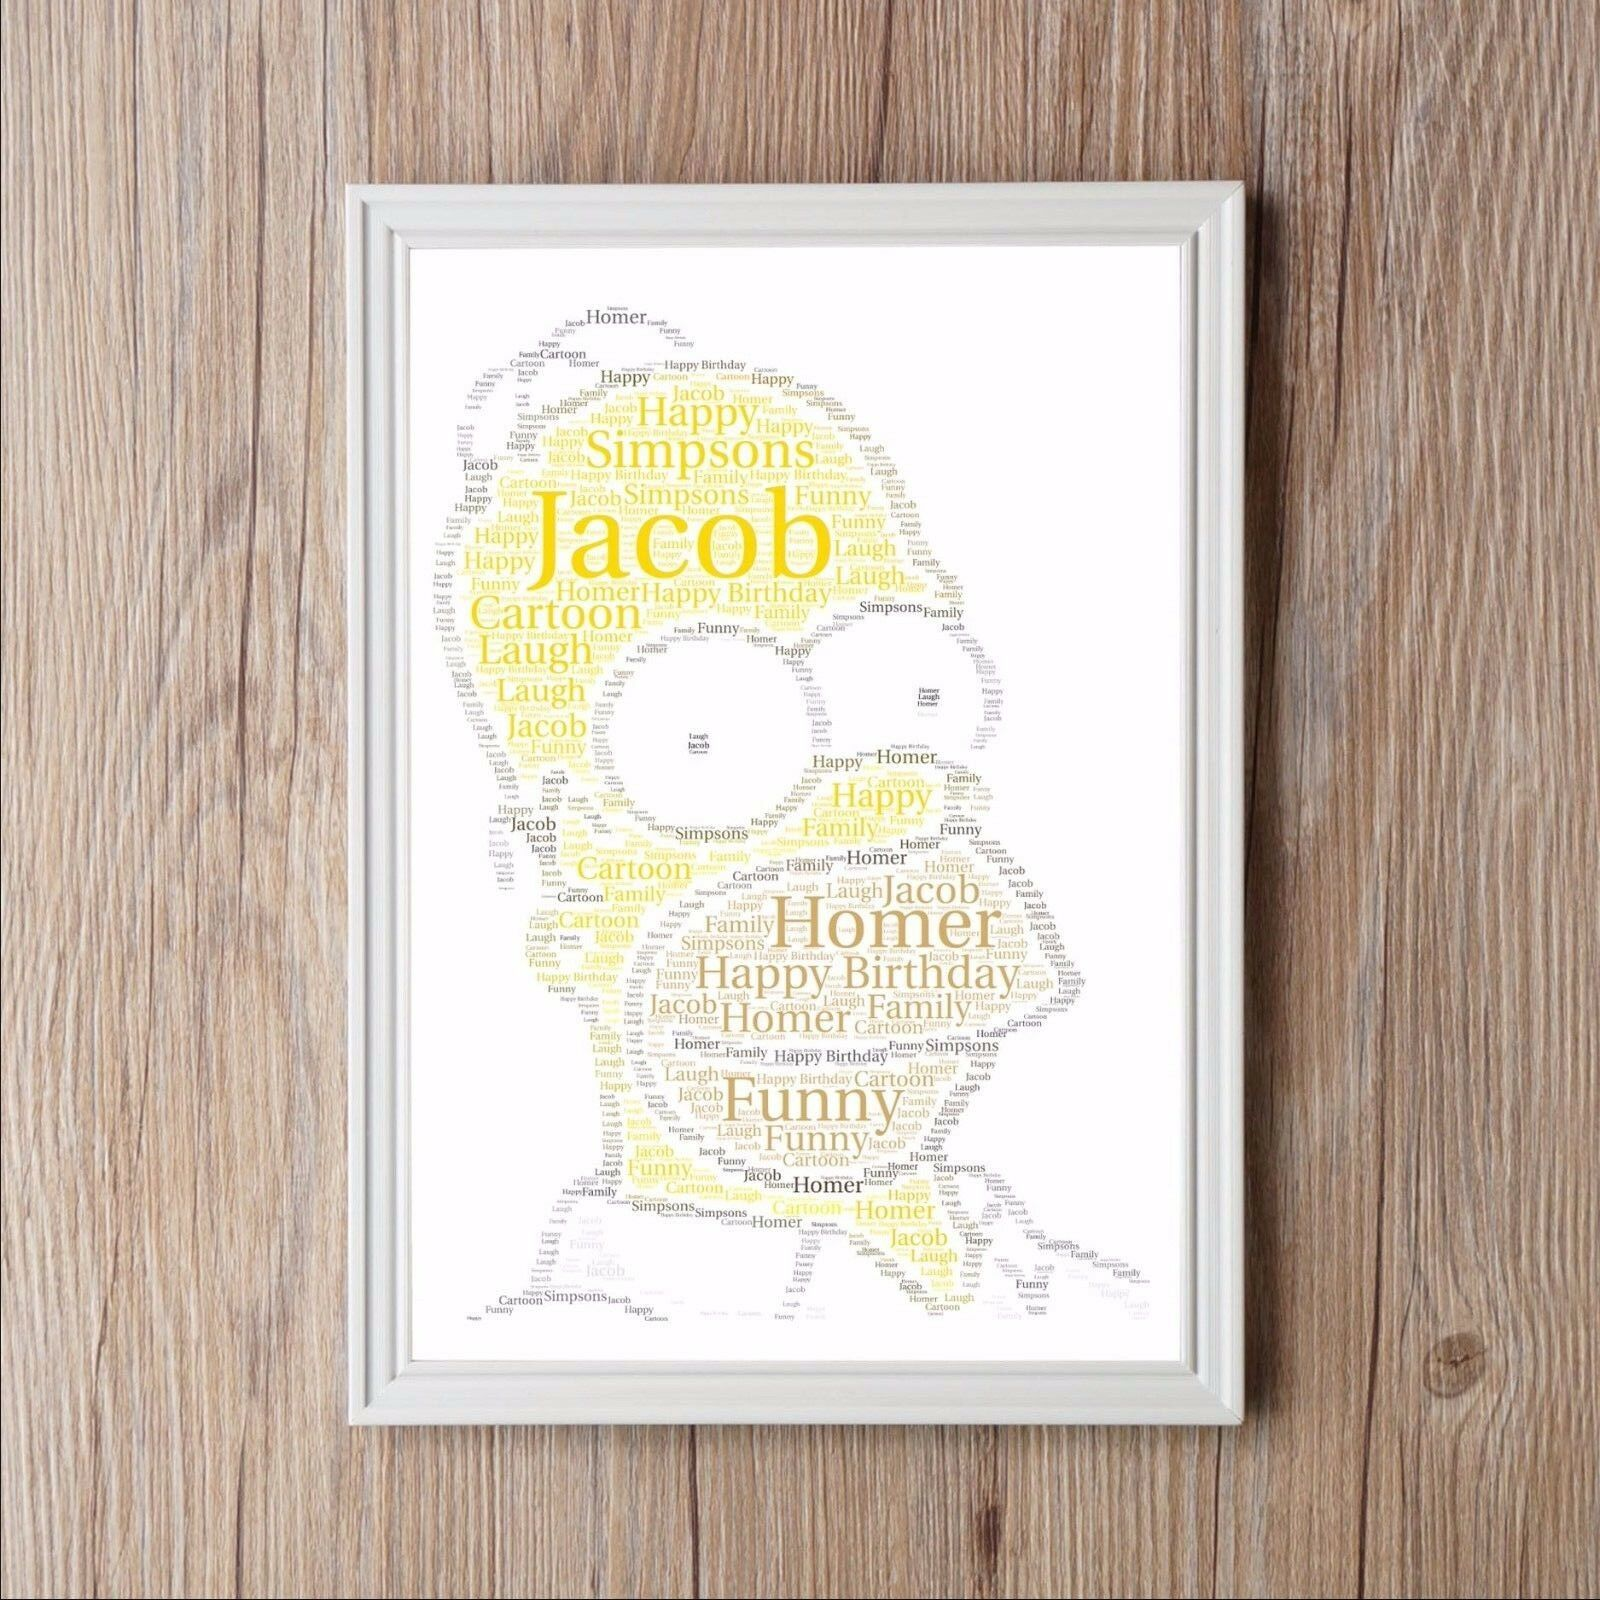 Details About SIMPSONS HOMER Birthday Personalised Word Art Print Gift Dad Grandad Fathers Day